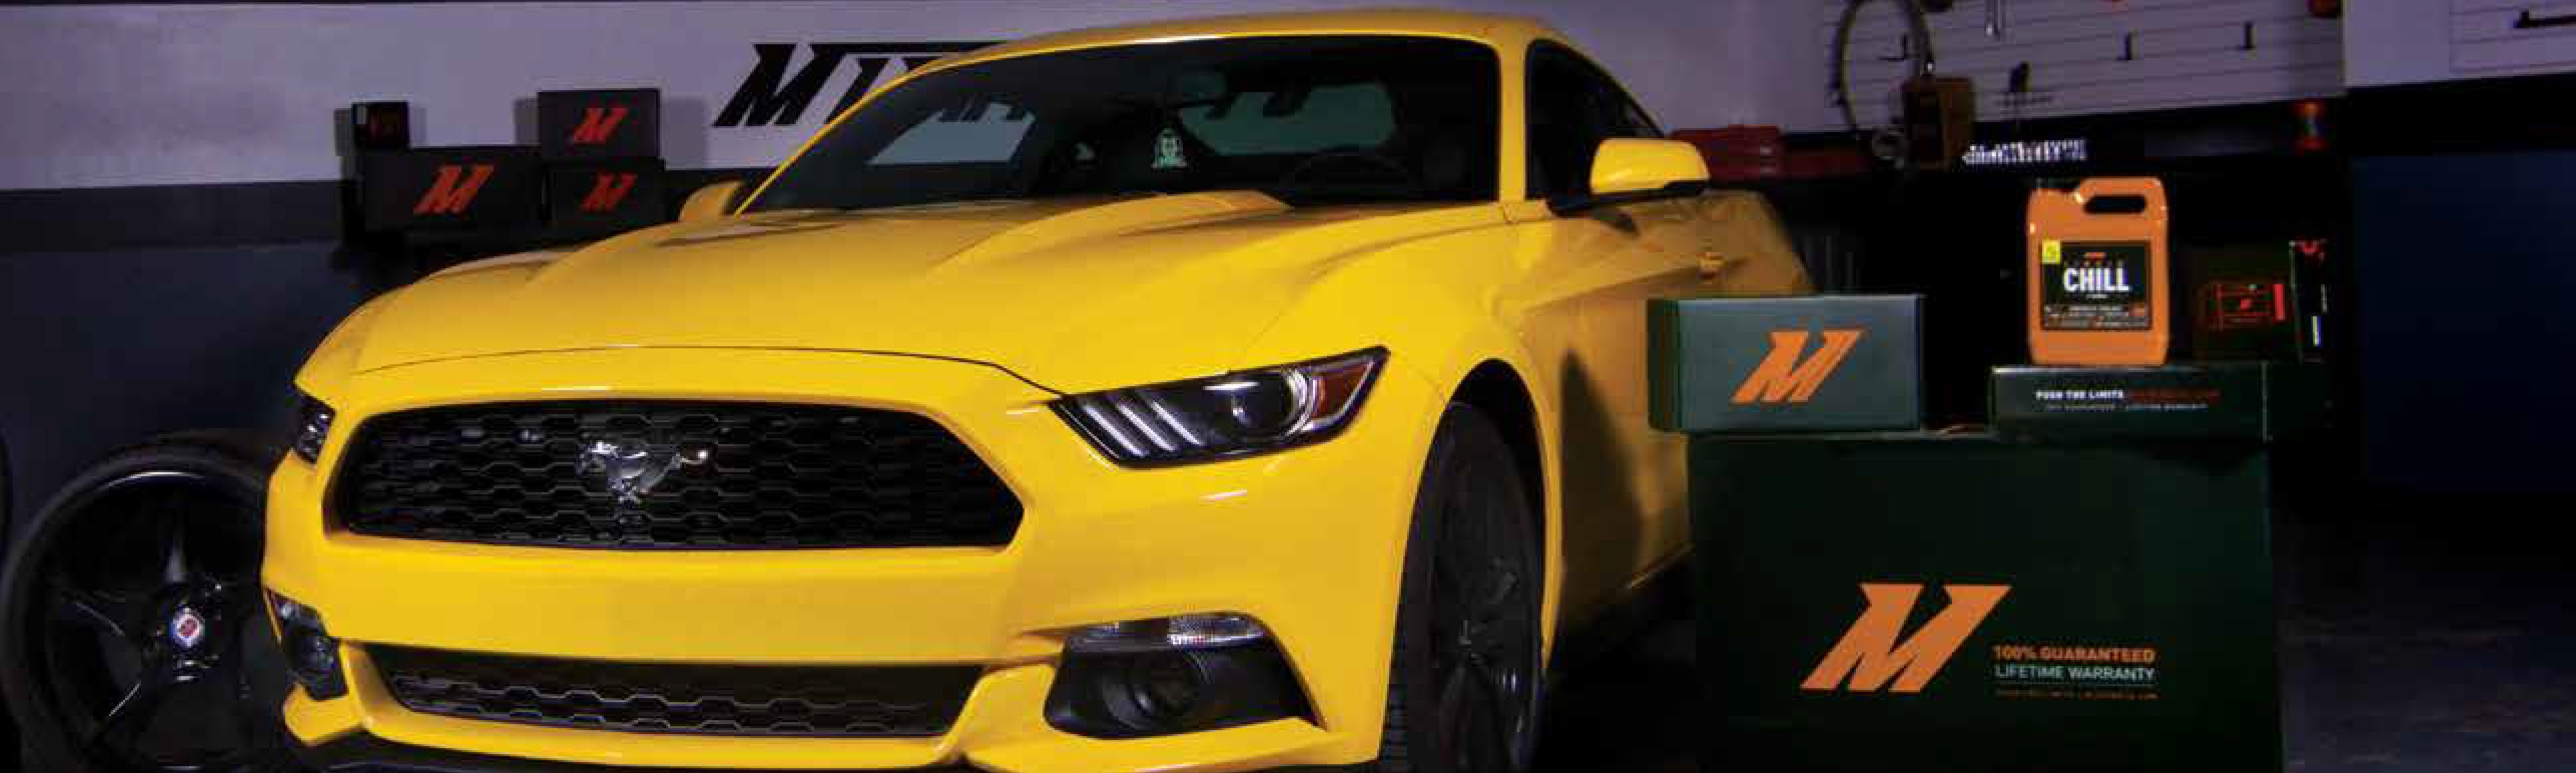 ford mustang performance parts. Black Bedroom Furniture Sets. Home Design Ideas